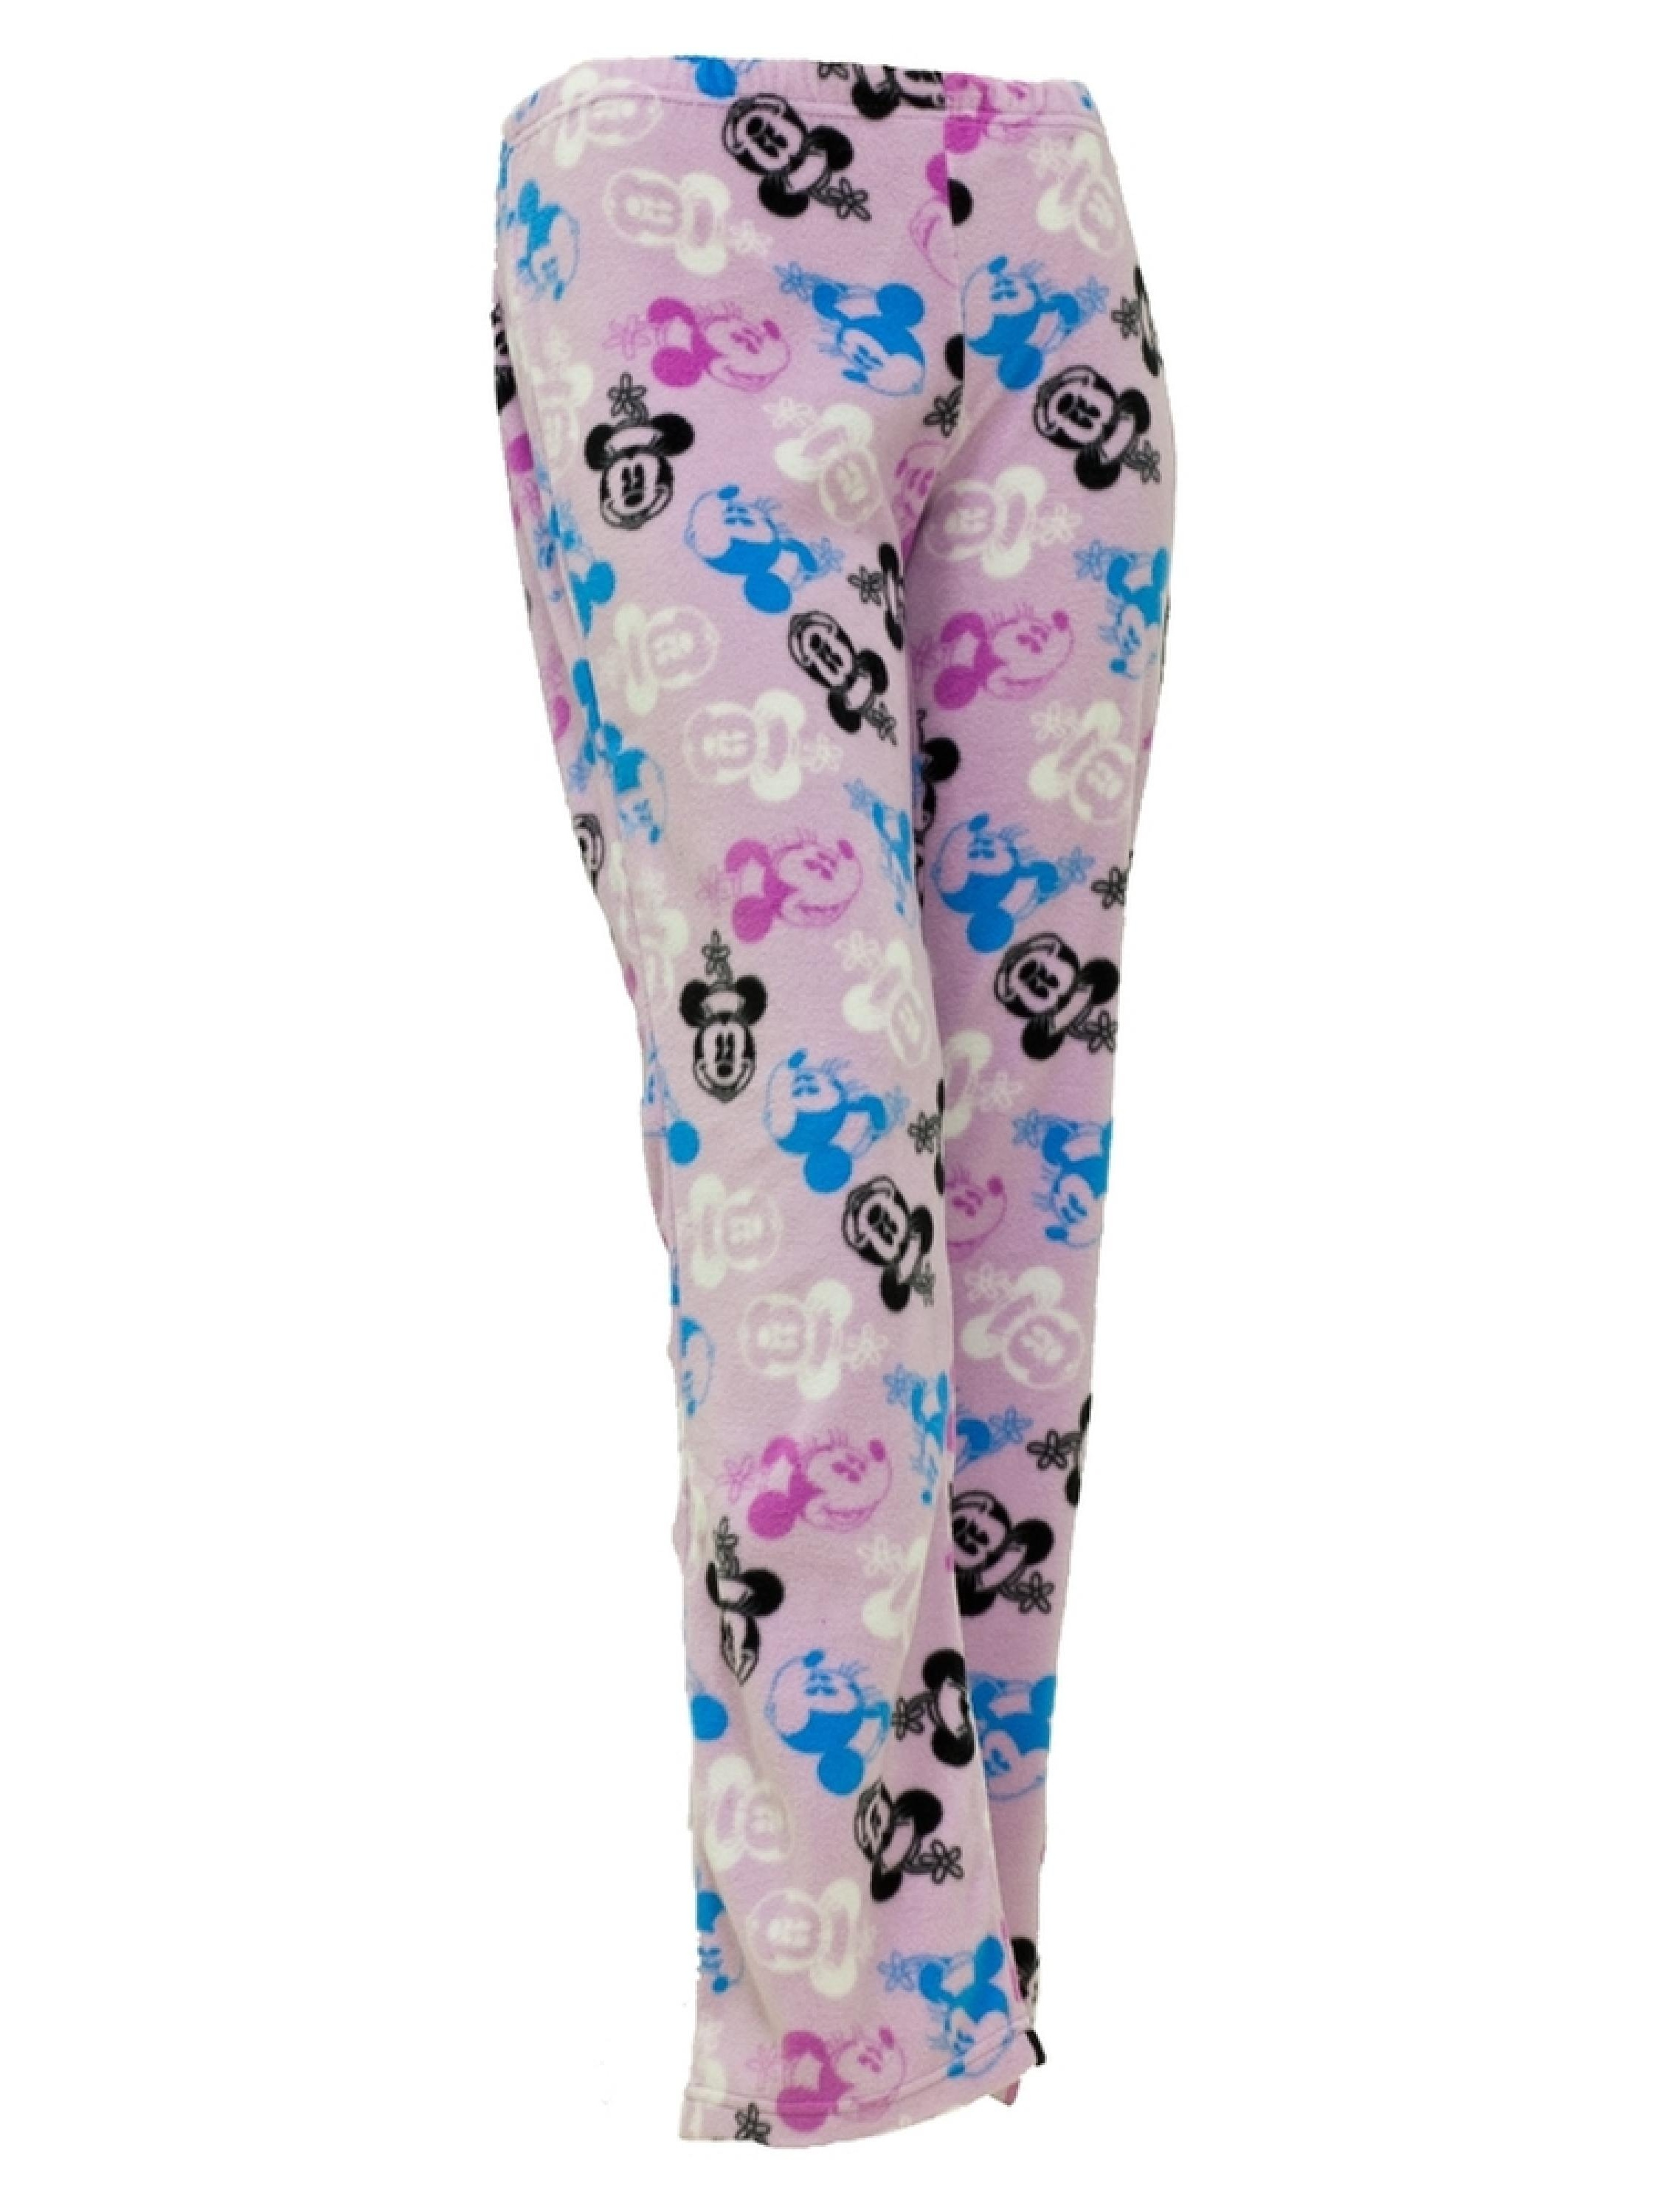 Head Toss Girls Youth Sleep Pants